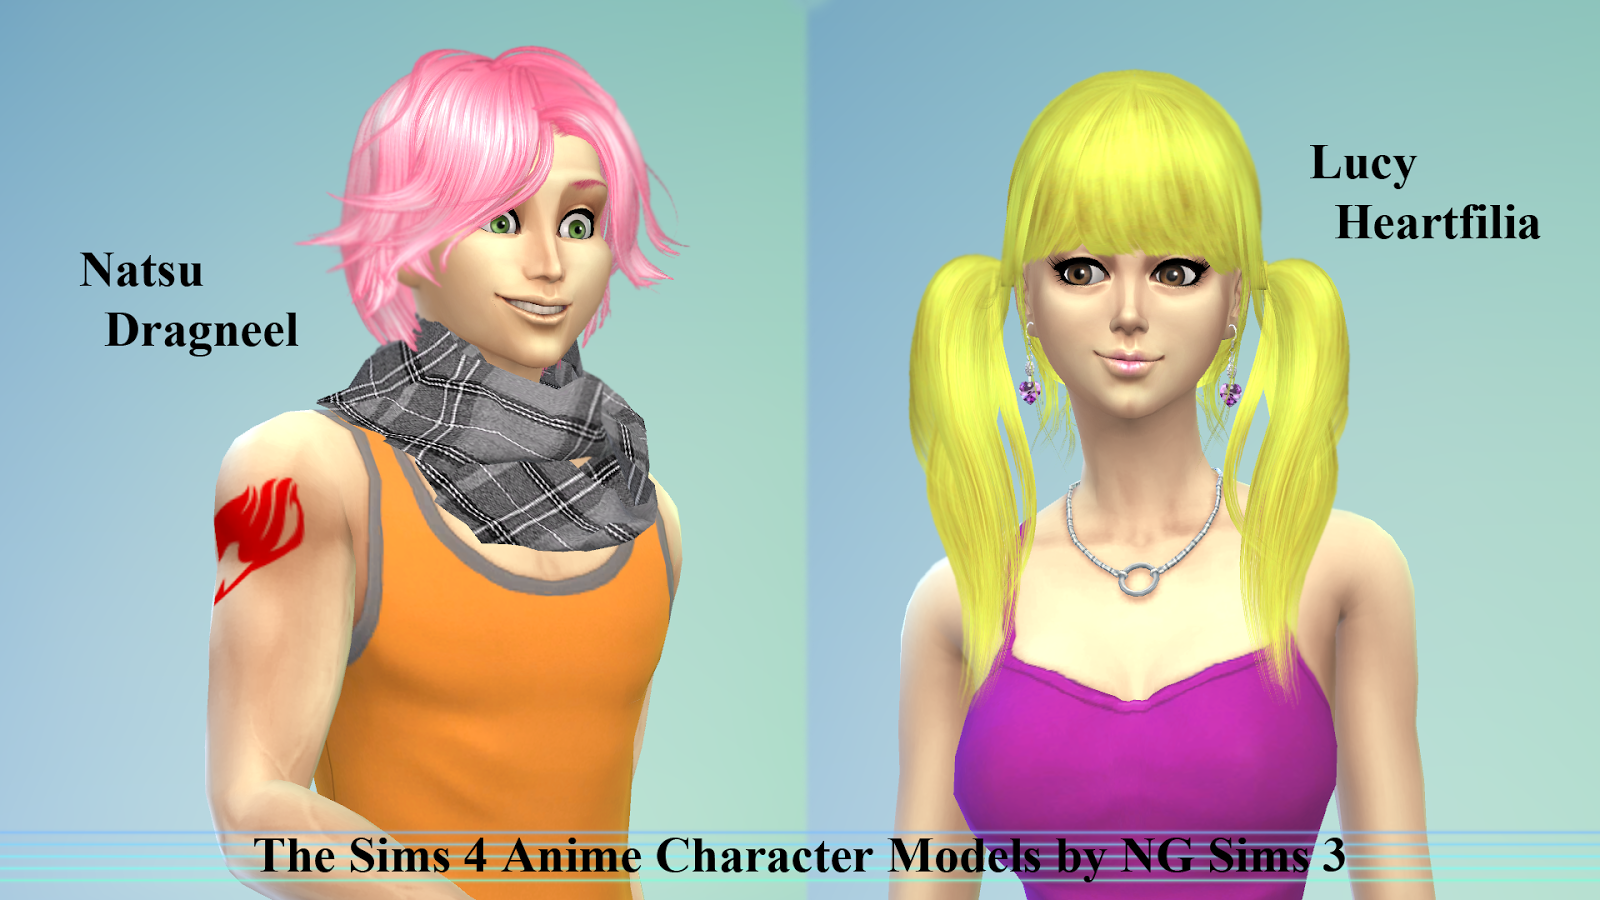 fairy tail characters - Google Search | The Sims | Sims ...